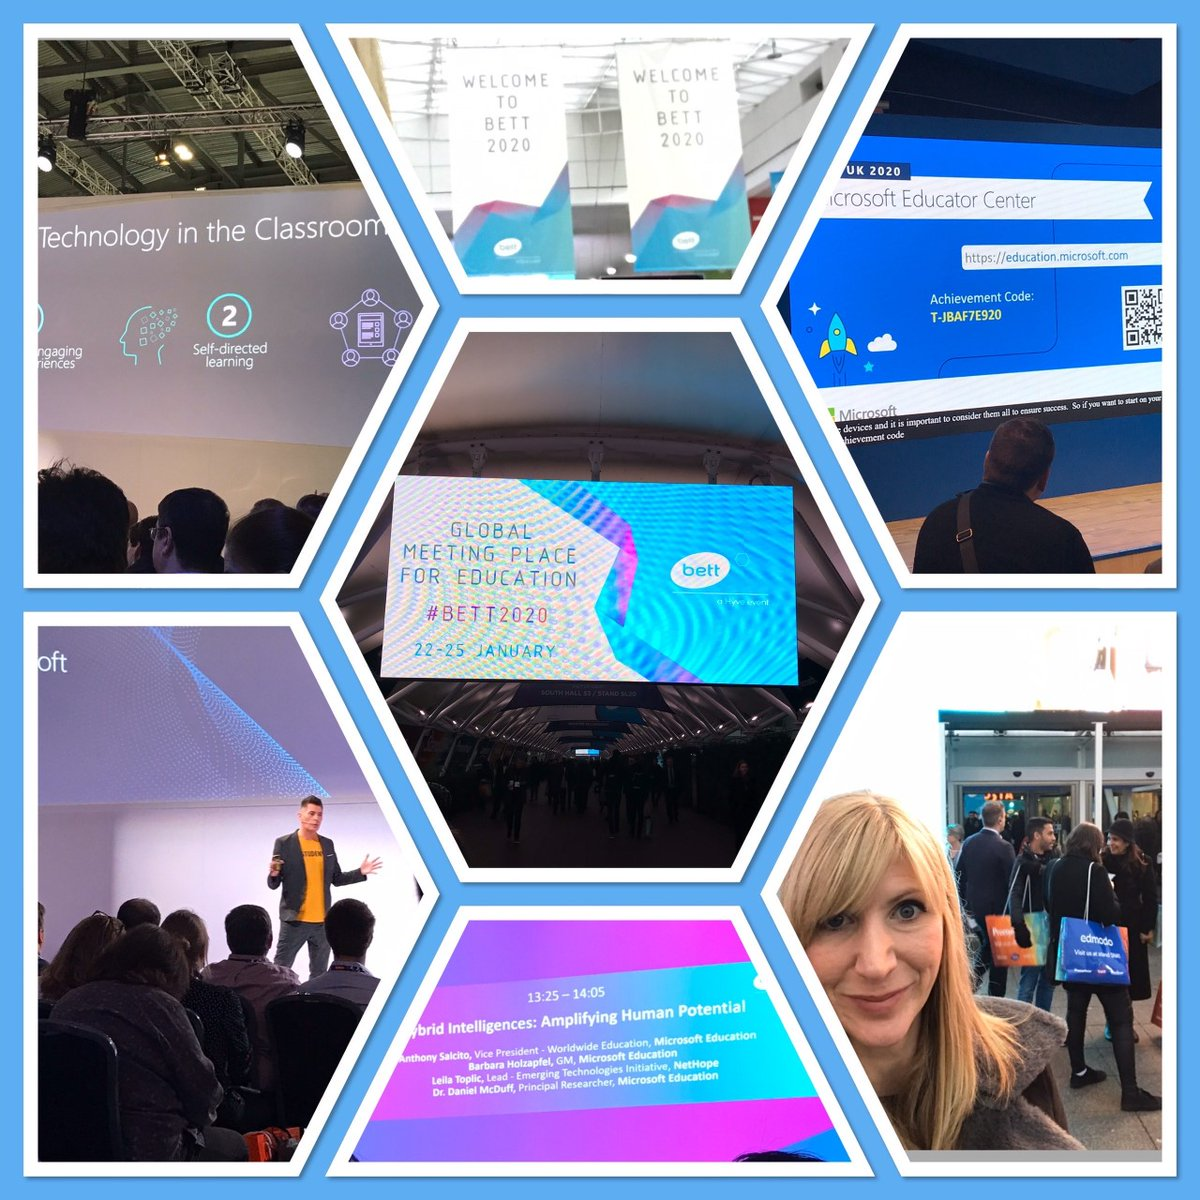 Had a great time at the BETT show in London. It was so interesting to see the amount of groundbreaking tech that's out there to support young people to develop so many different skills. And I didn't even get lost on the tube!  Lizzie #bett2020 #technologyisamazing pic.twitter.com/kBOseWXdYe